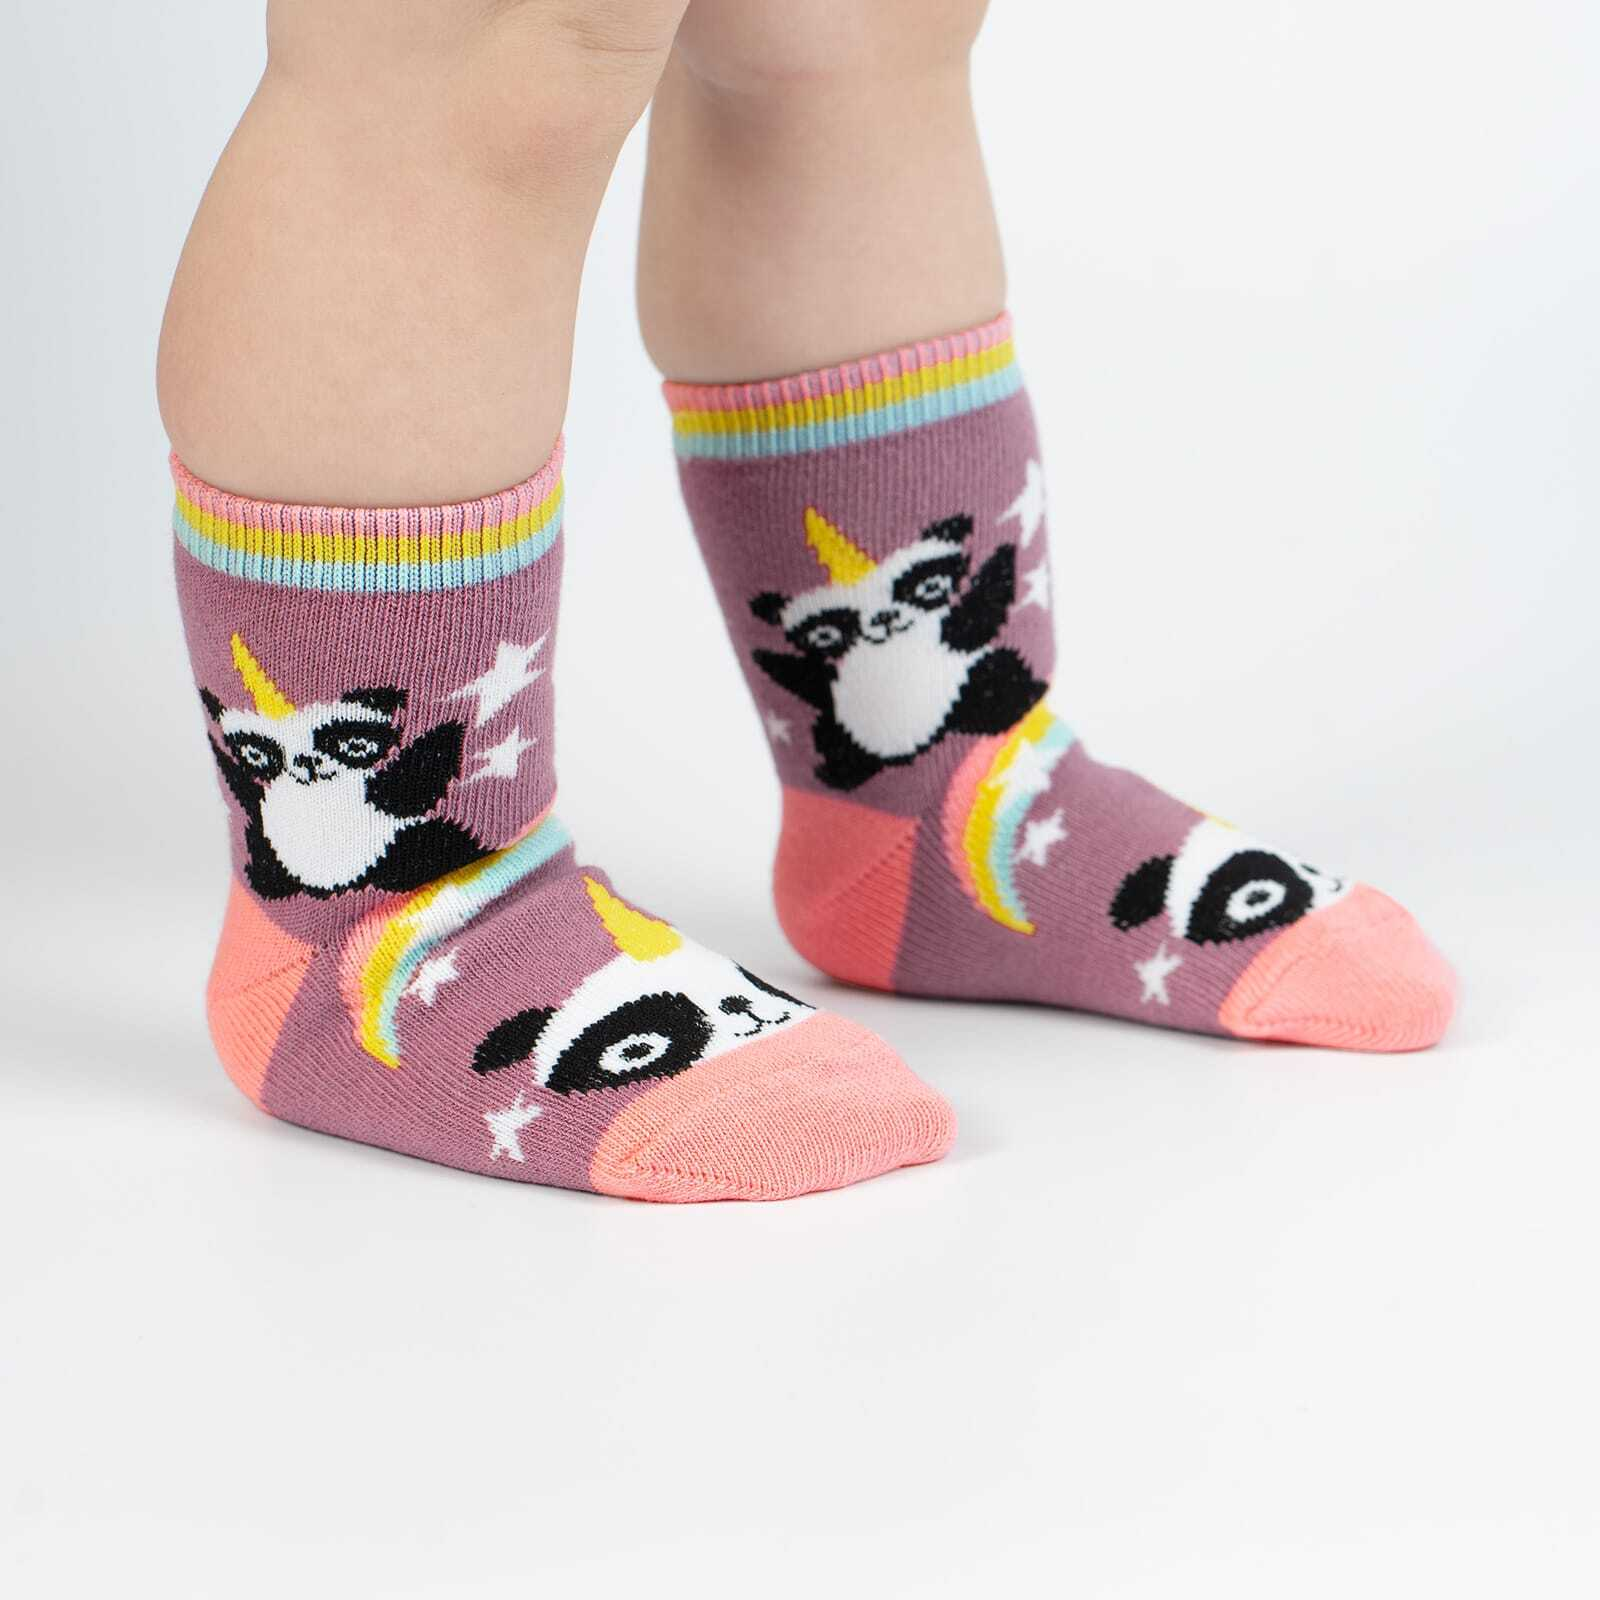 Pandacorn - Fun Mythical Panda Unicorn Crew Socks Pink - Toddler in Pink